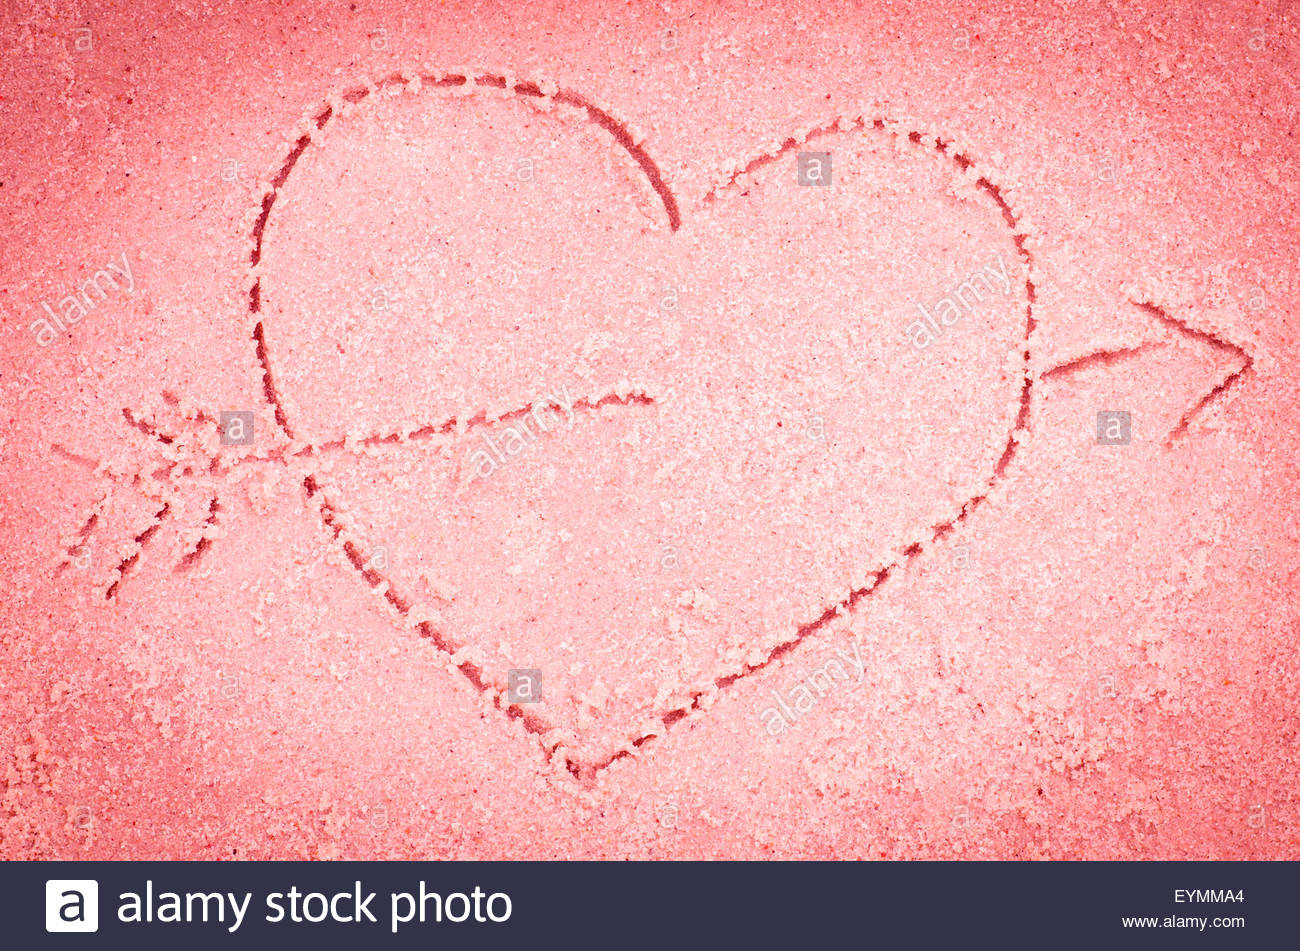 1300x951 Red Heart With Arrow Drawing On Sand Stock Photo 85892188